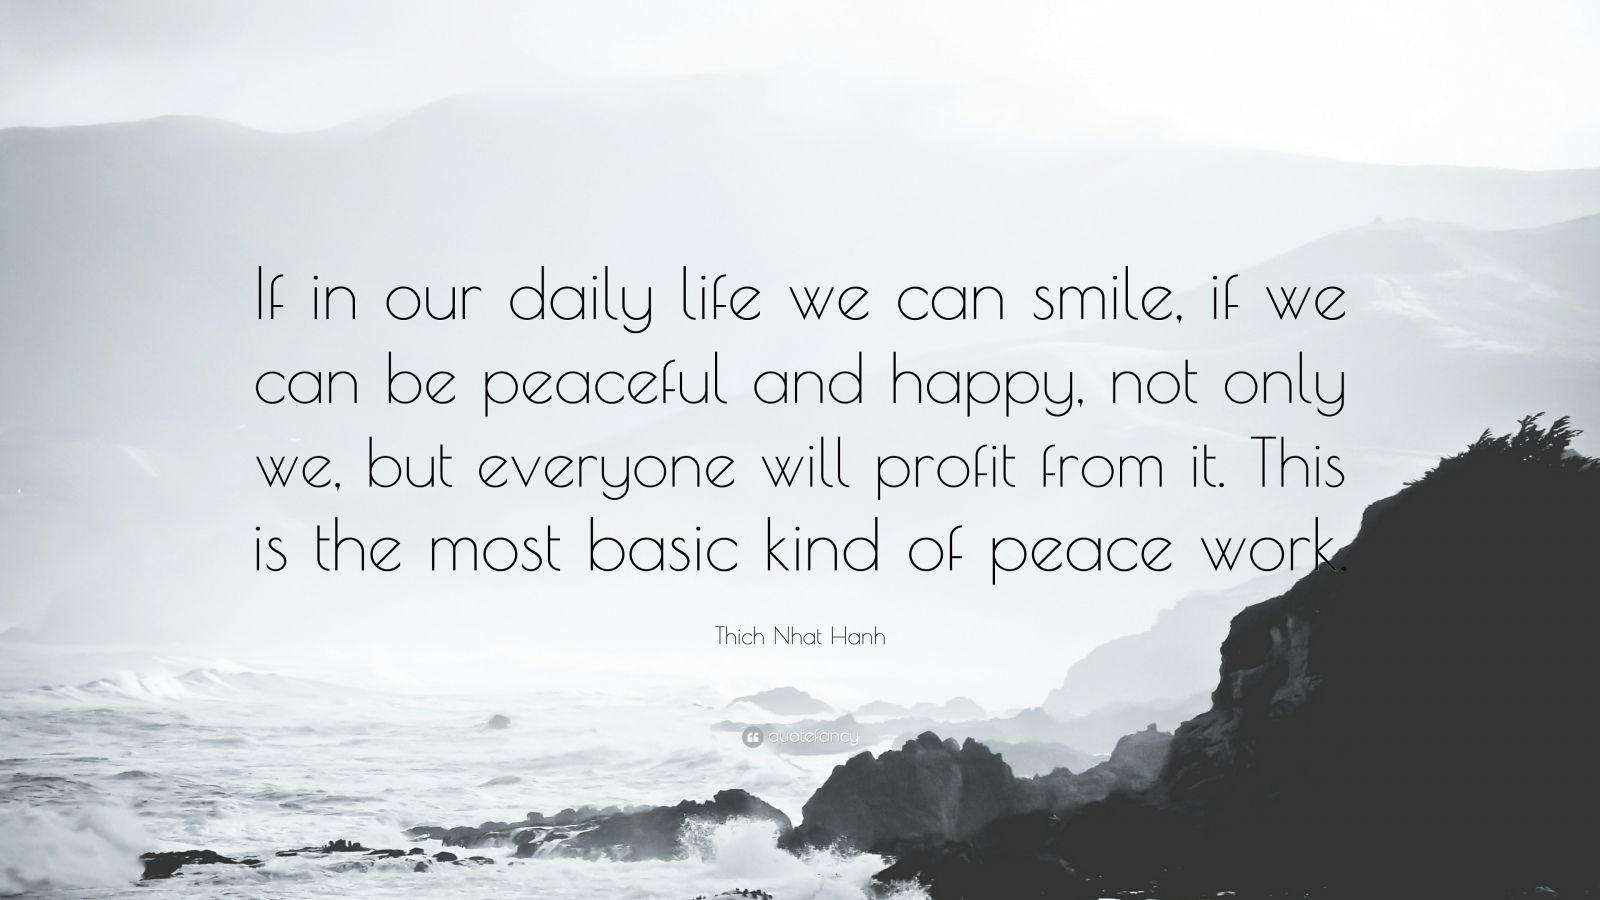 "Thich Nhat Hanh Quote: ""If in our daily life we can smile, if we can be peaceful and happy, not only we, but everyone will profit from it. This is the most basic kind of peace work."""